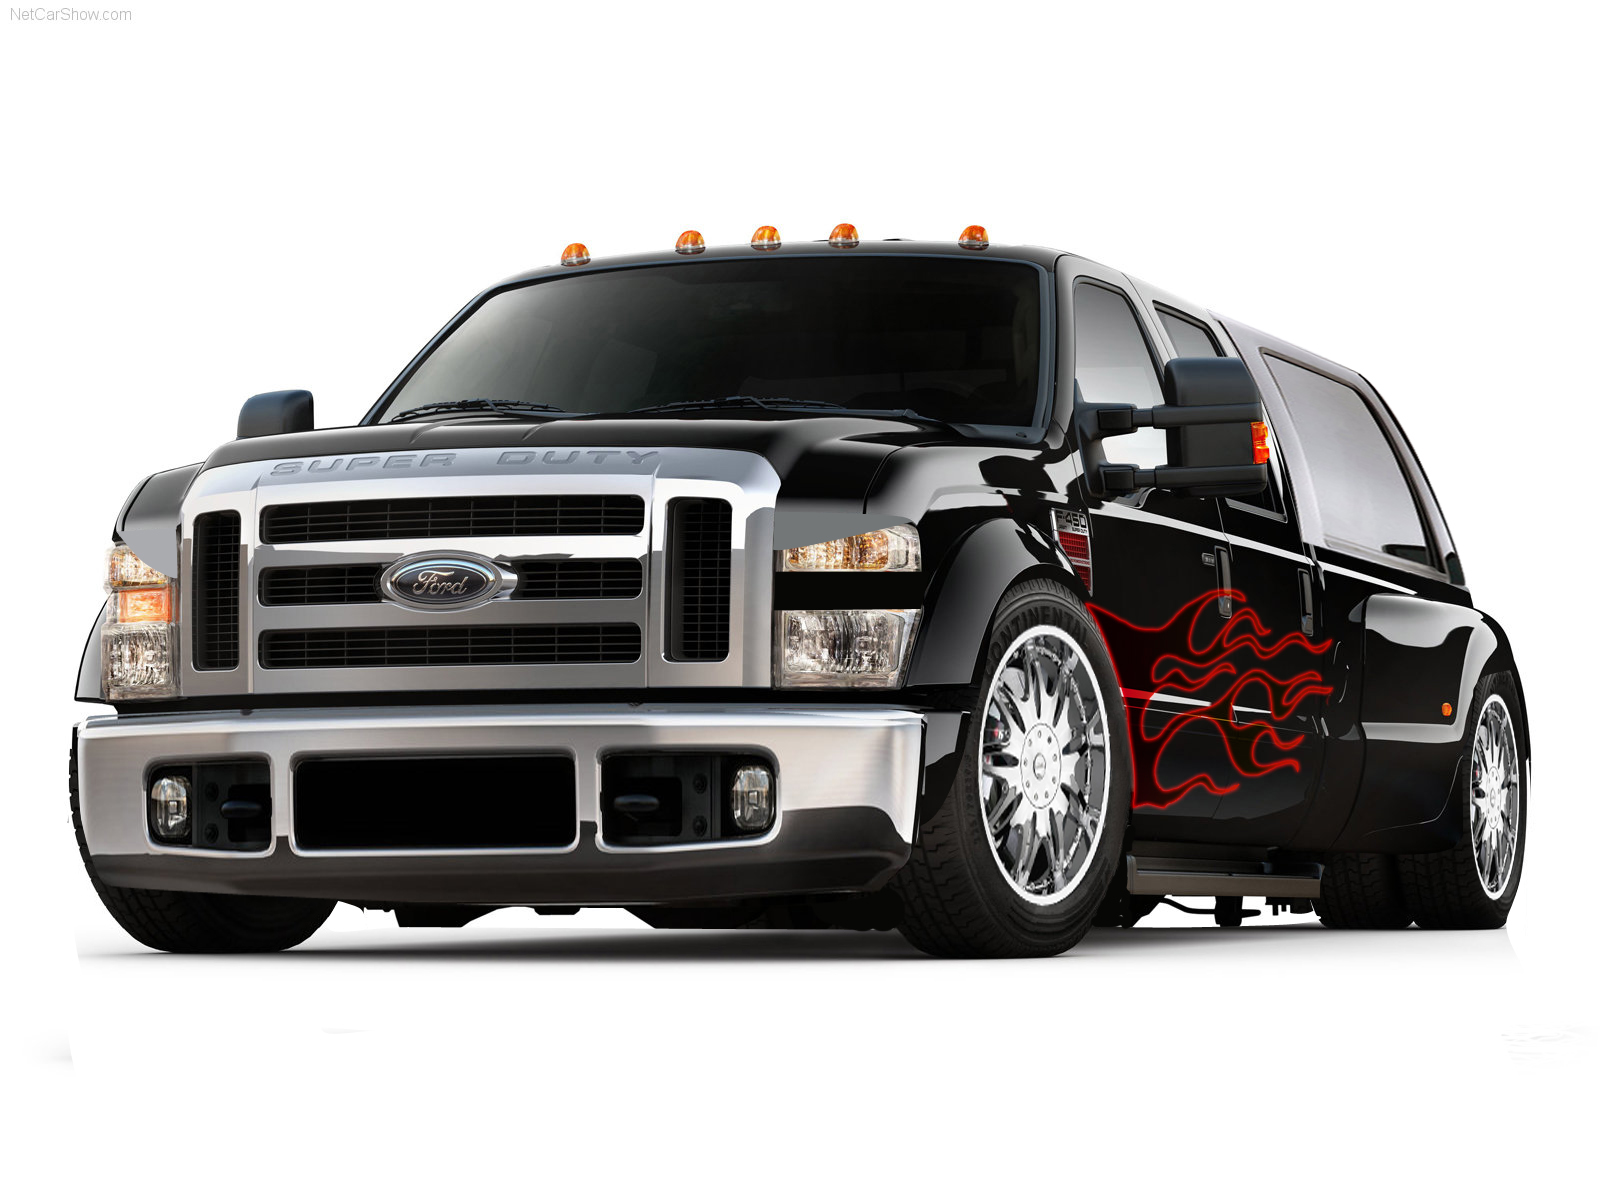 Ford f-450 photo - 2